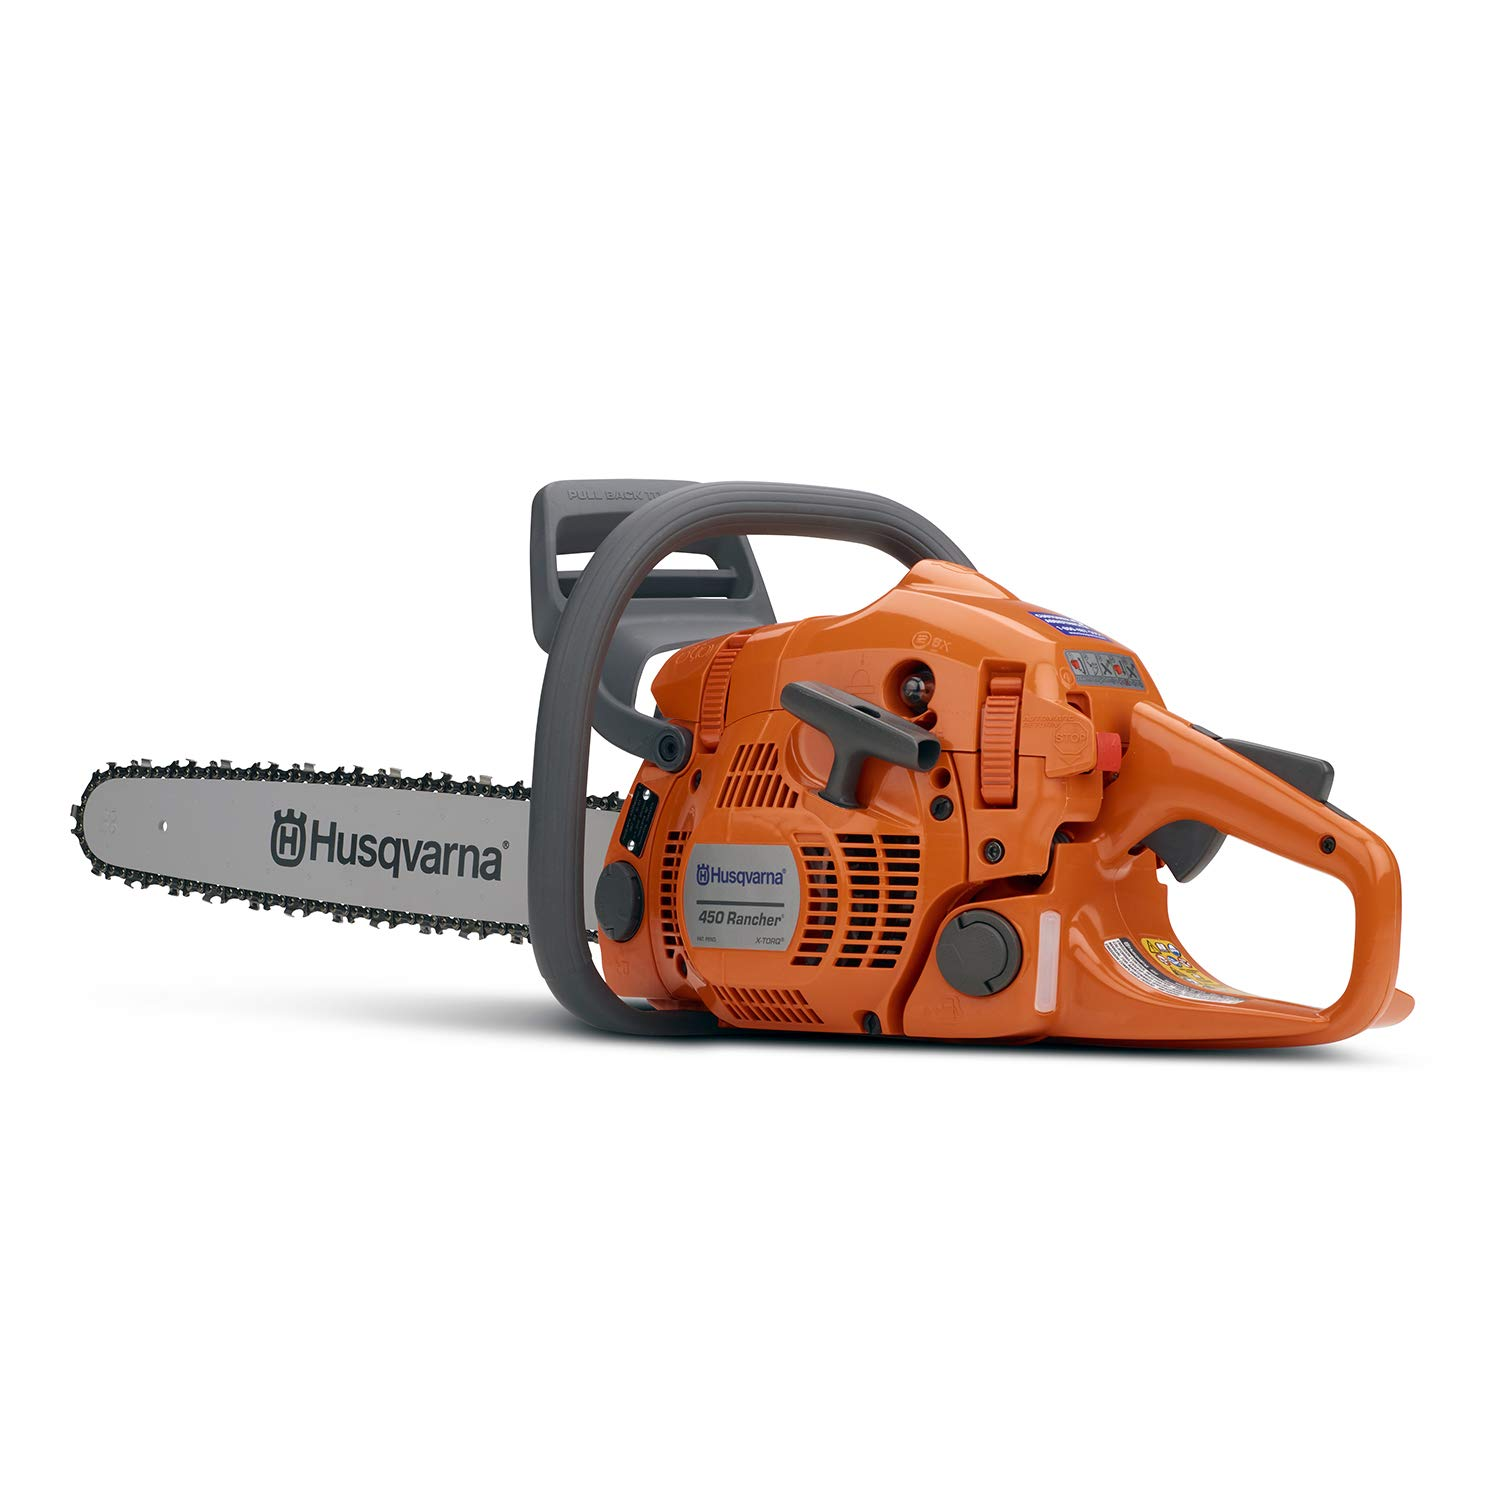 Husqvarna 450E Chainsaws product image 8